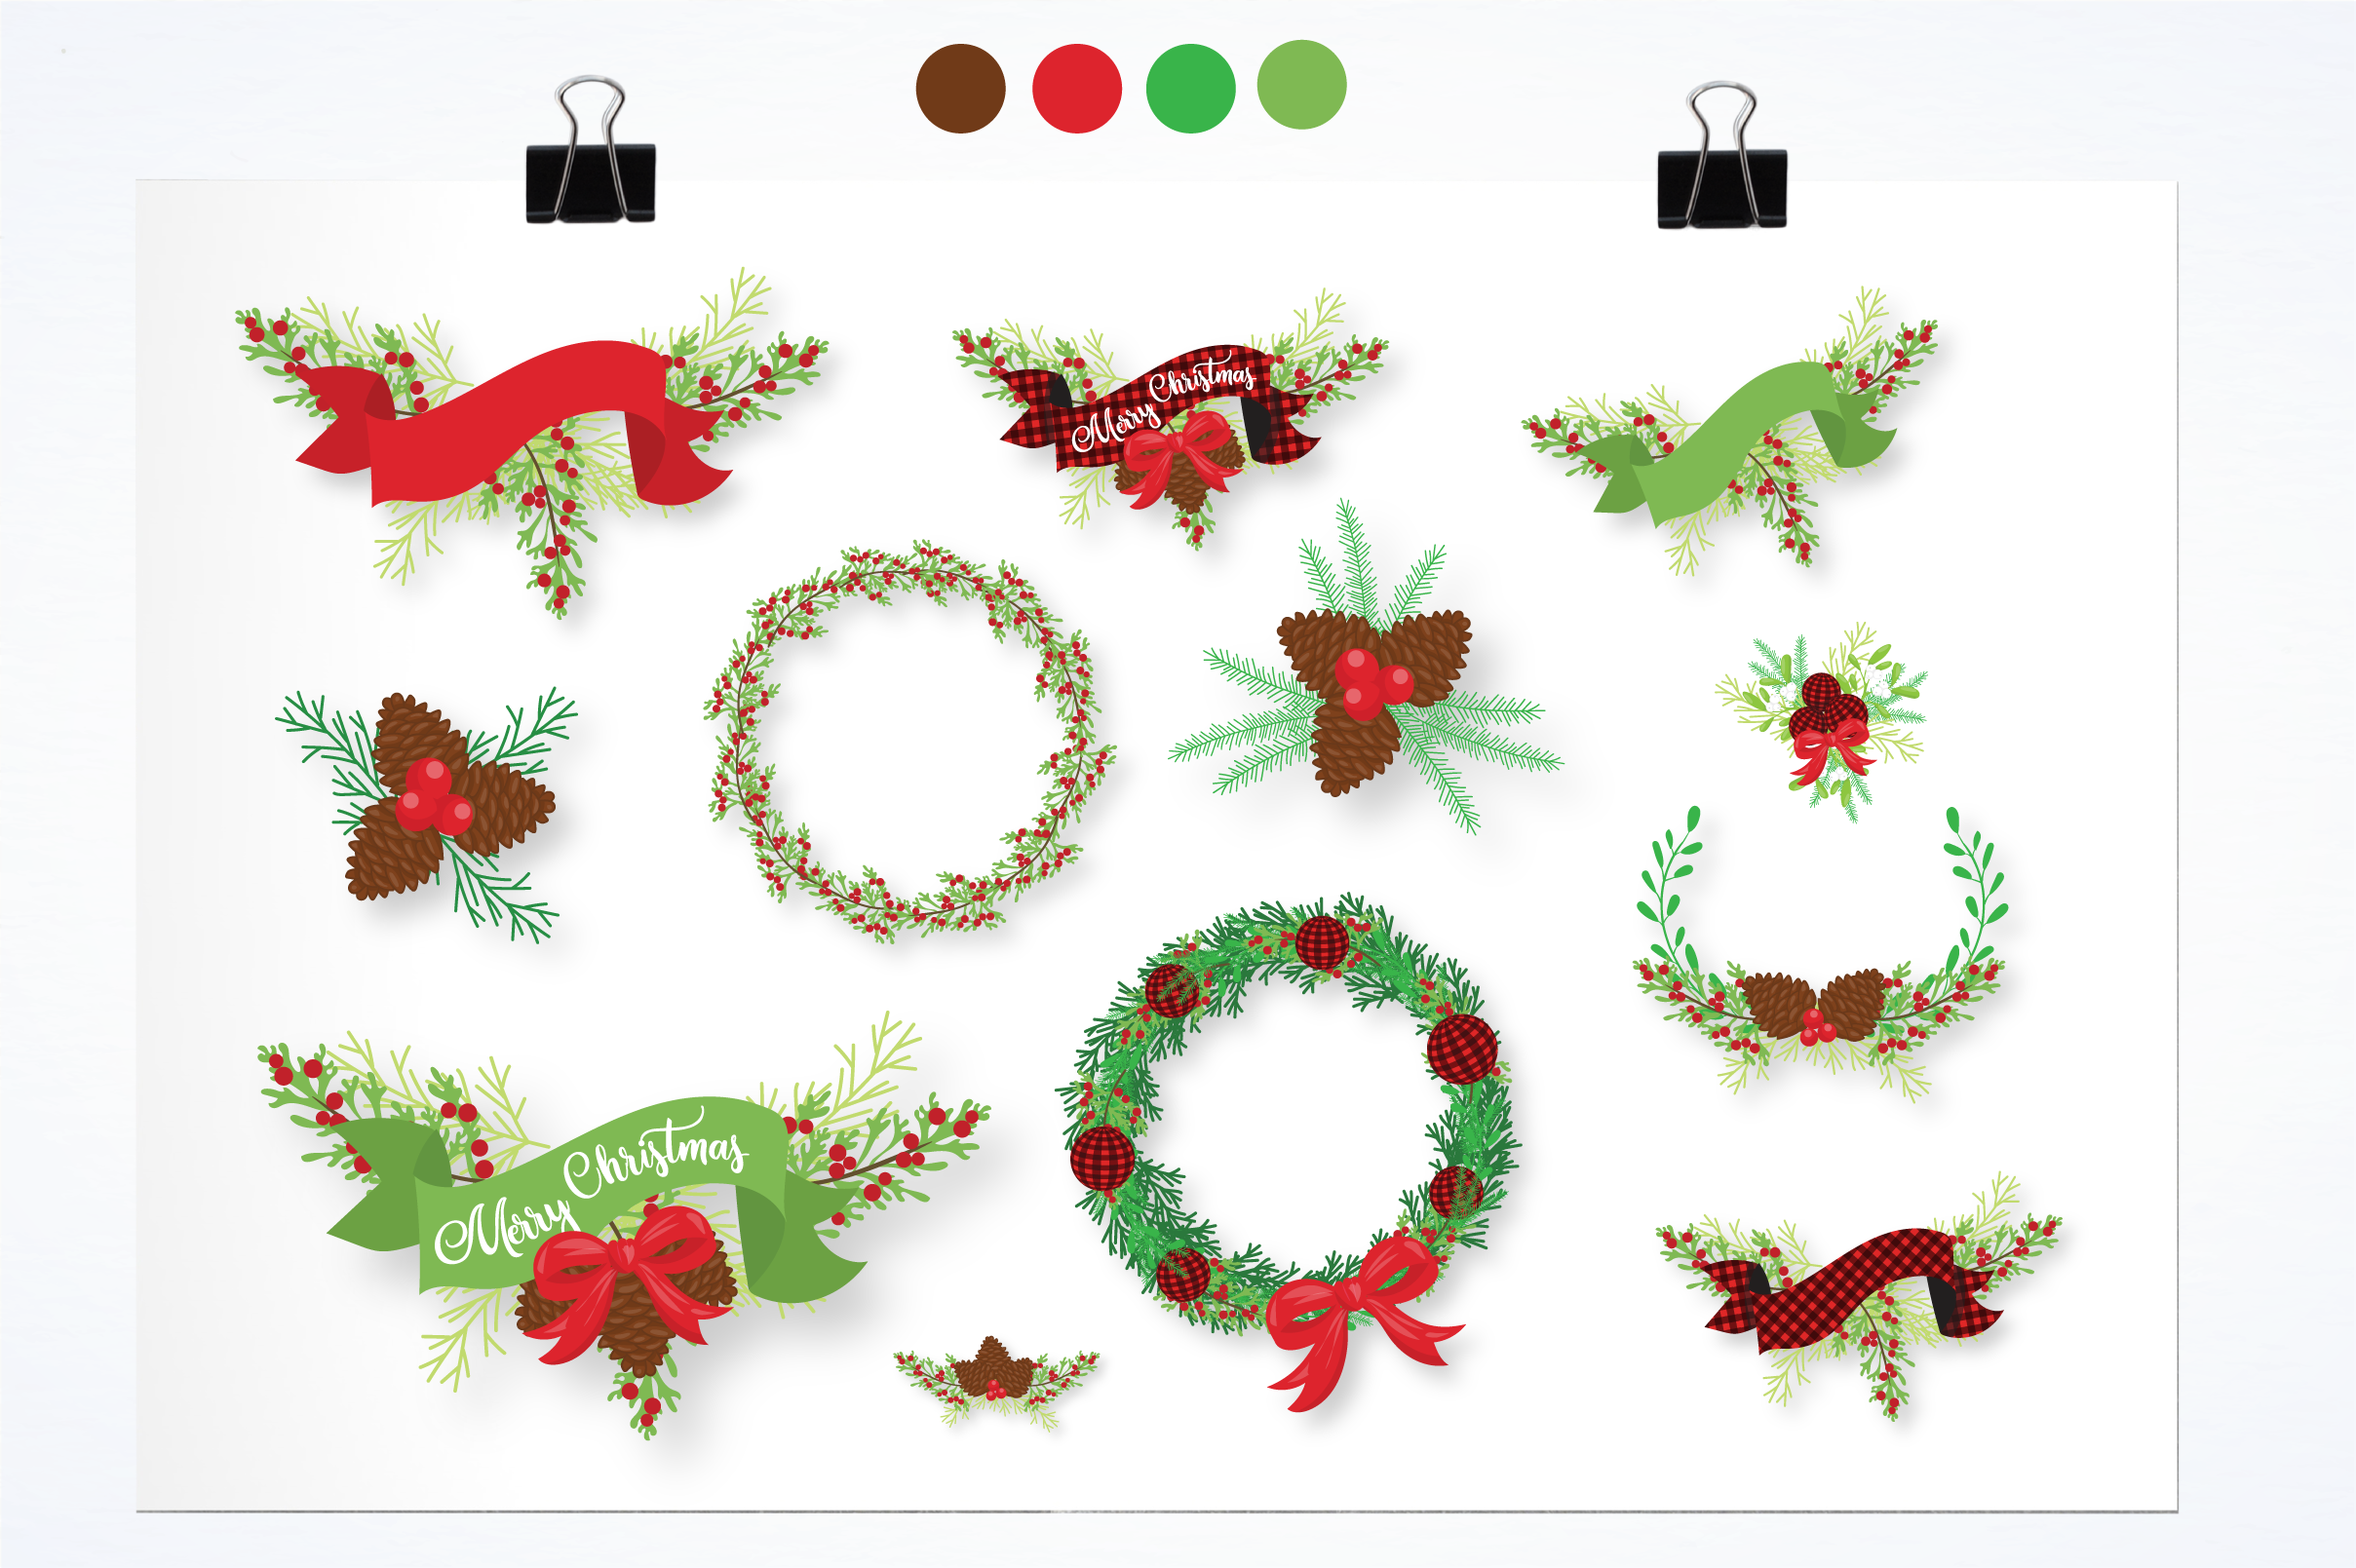 marry Christmas graphics and illustrations example image 2